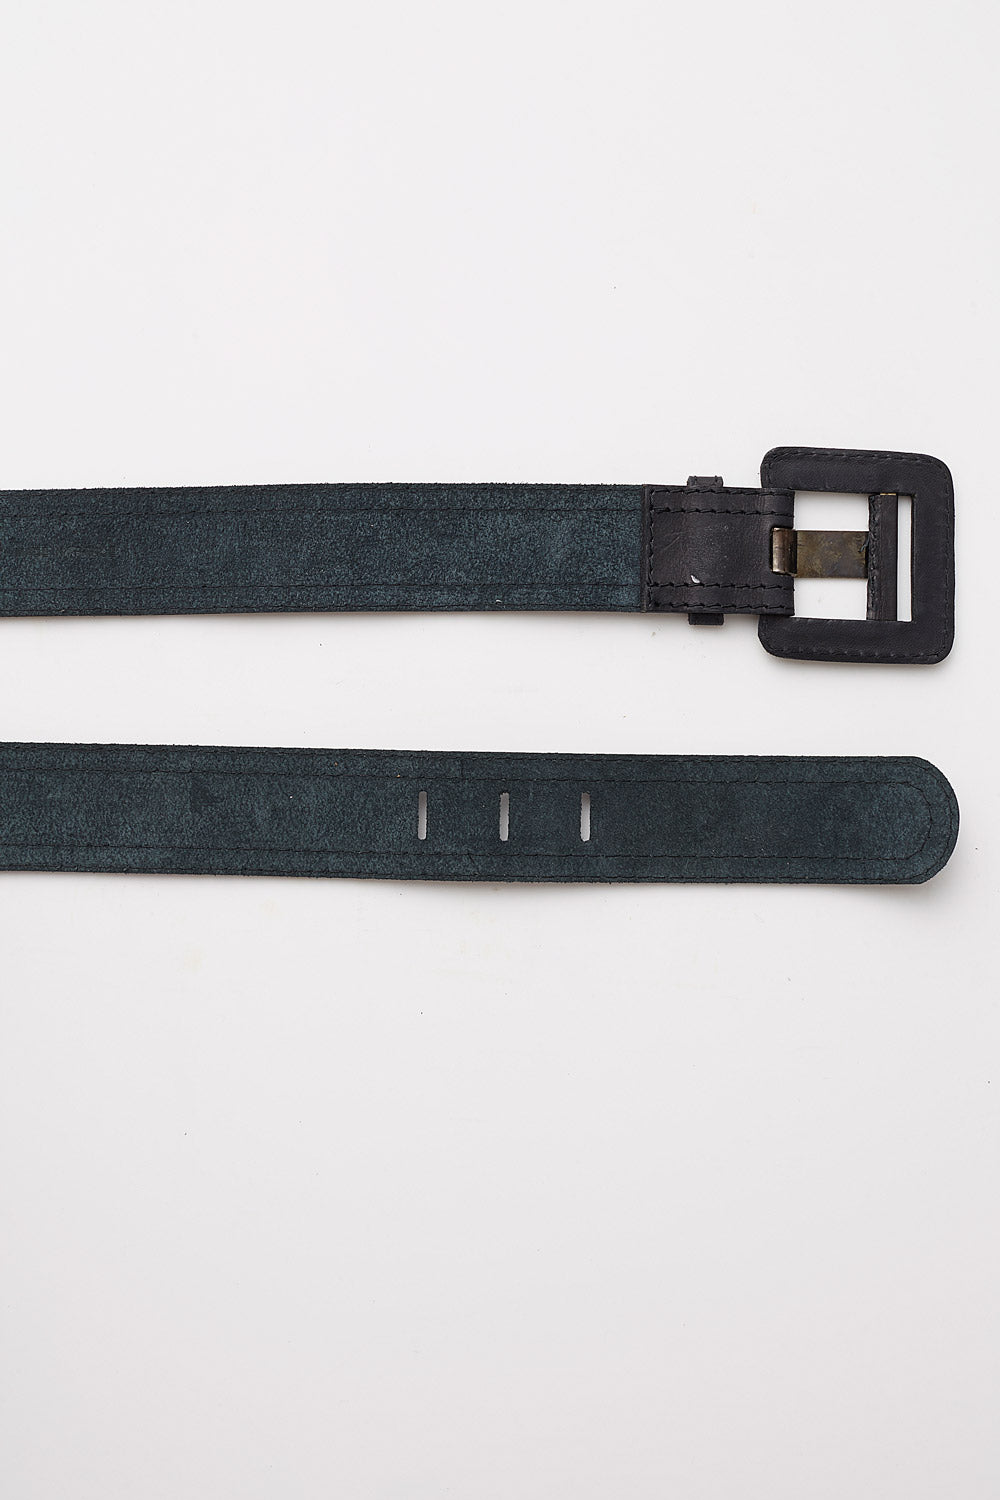 Yves Saint Laurent<br>1970's soft leather belt